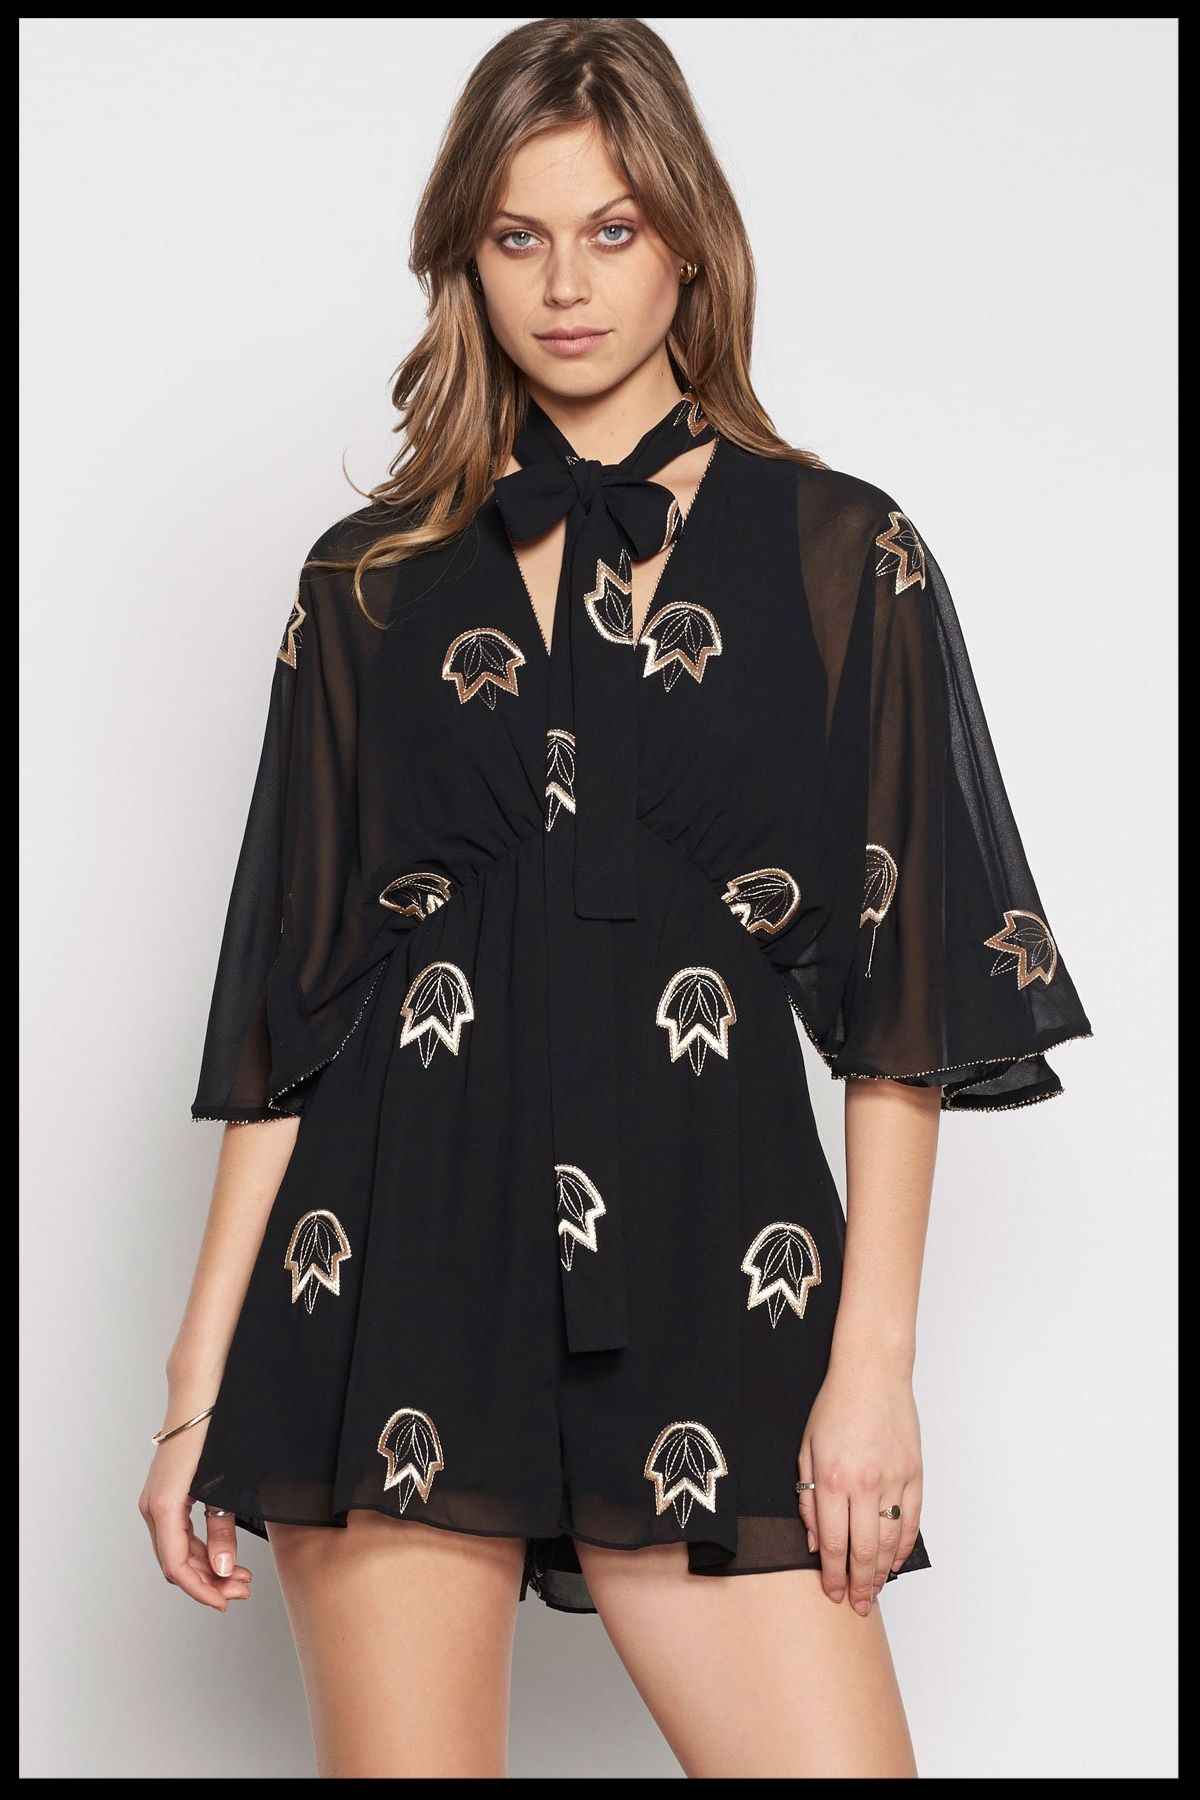 a009b6d94b Stevie May How Long Embroidered Playsuit - Black  Gold